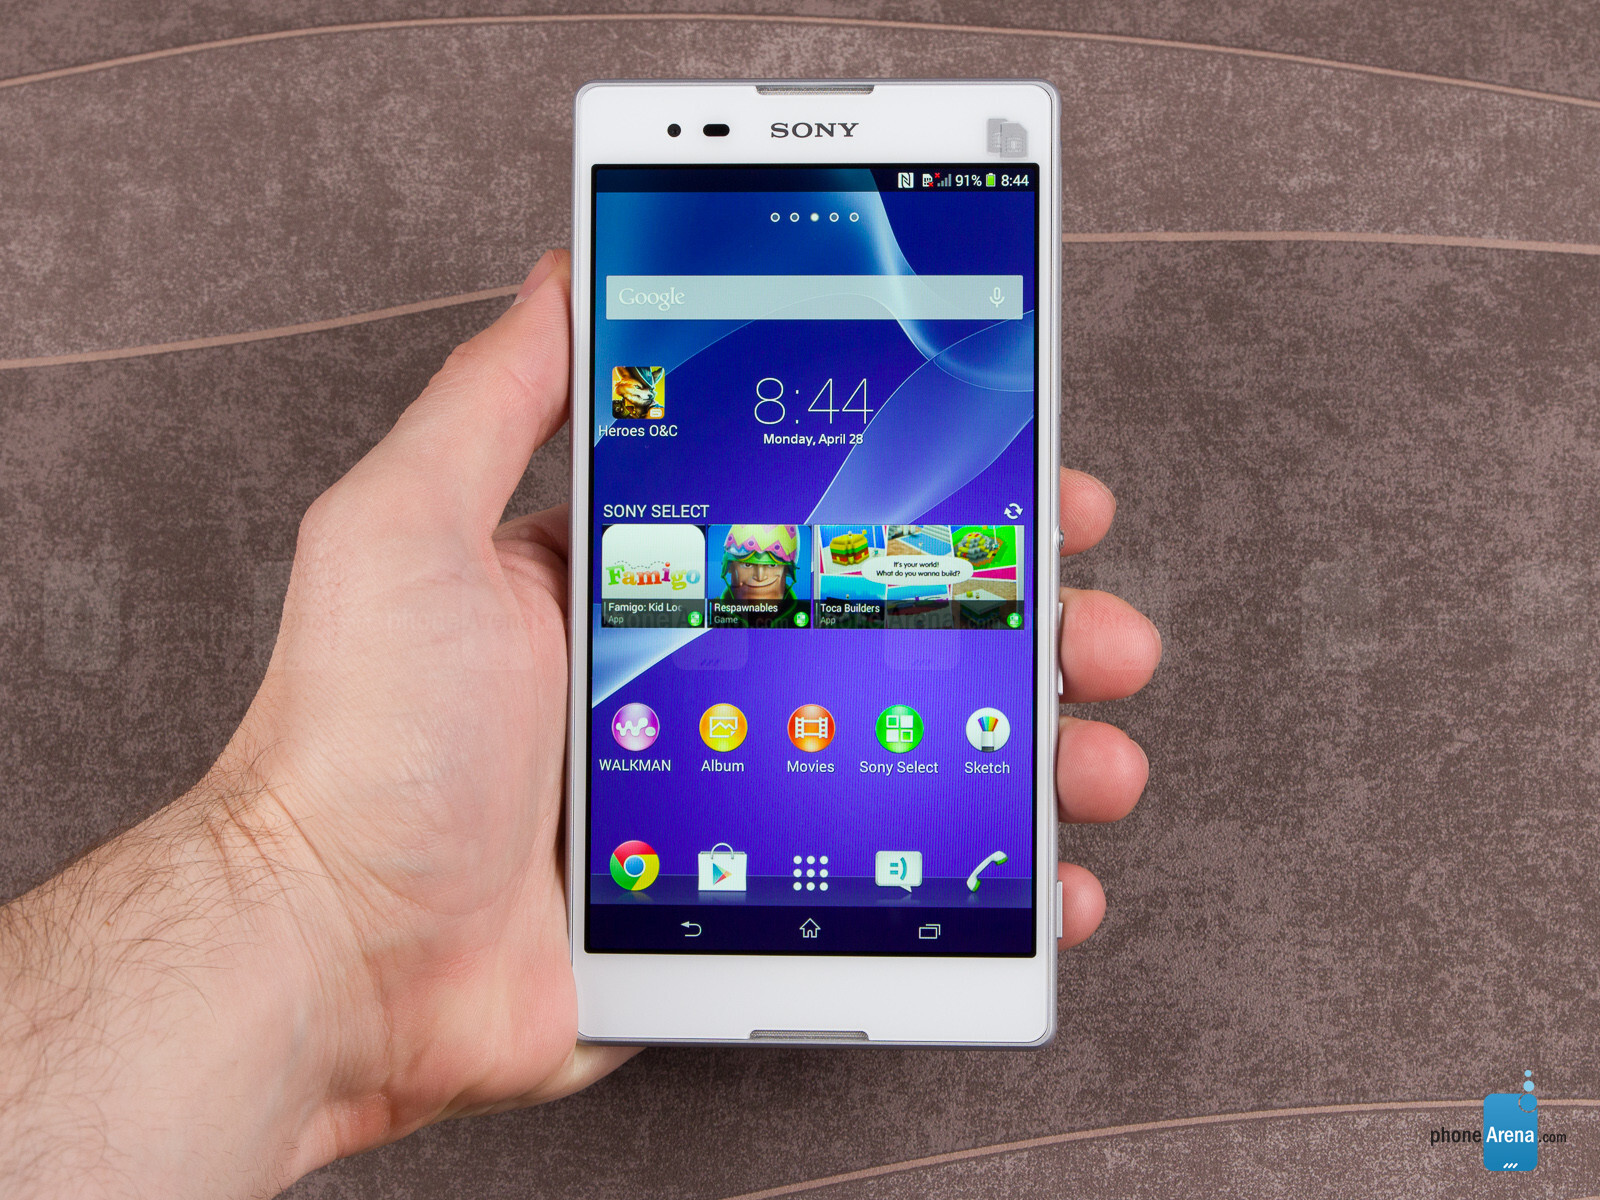 Camera Stylish Android Phone the 10 best cheap android phones under 250 you can buy right now for a holiday present